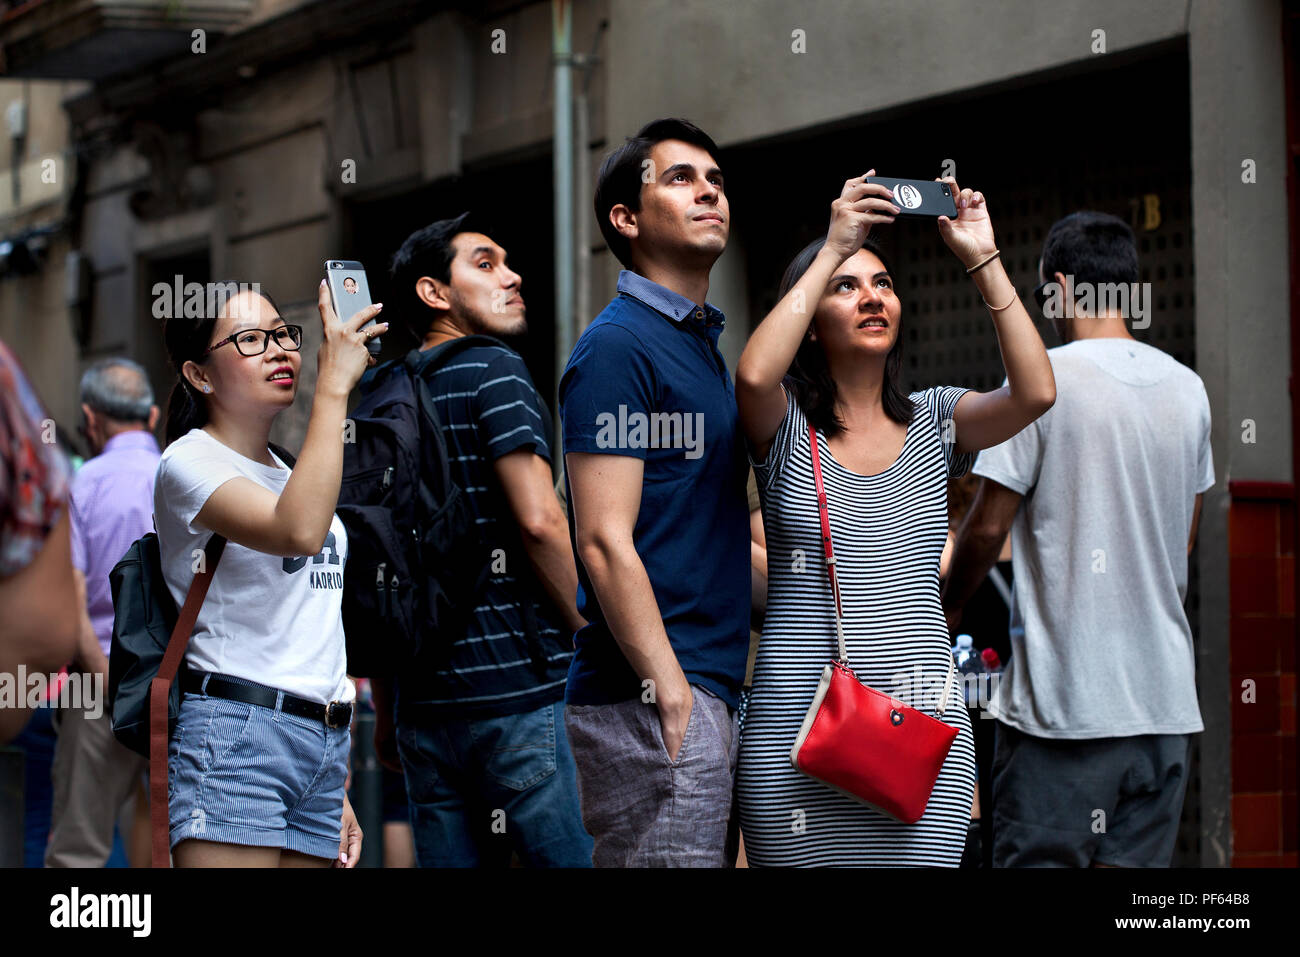 Tourists taking photos on their smartphones. Barcelona, Spain. - Stock Image